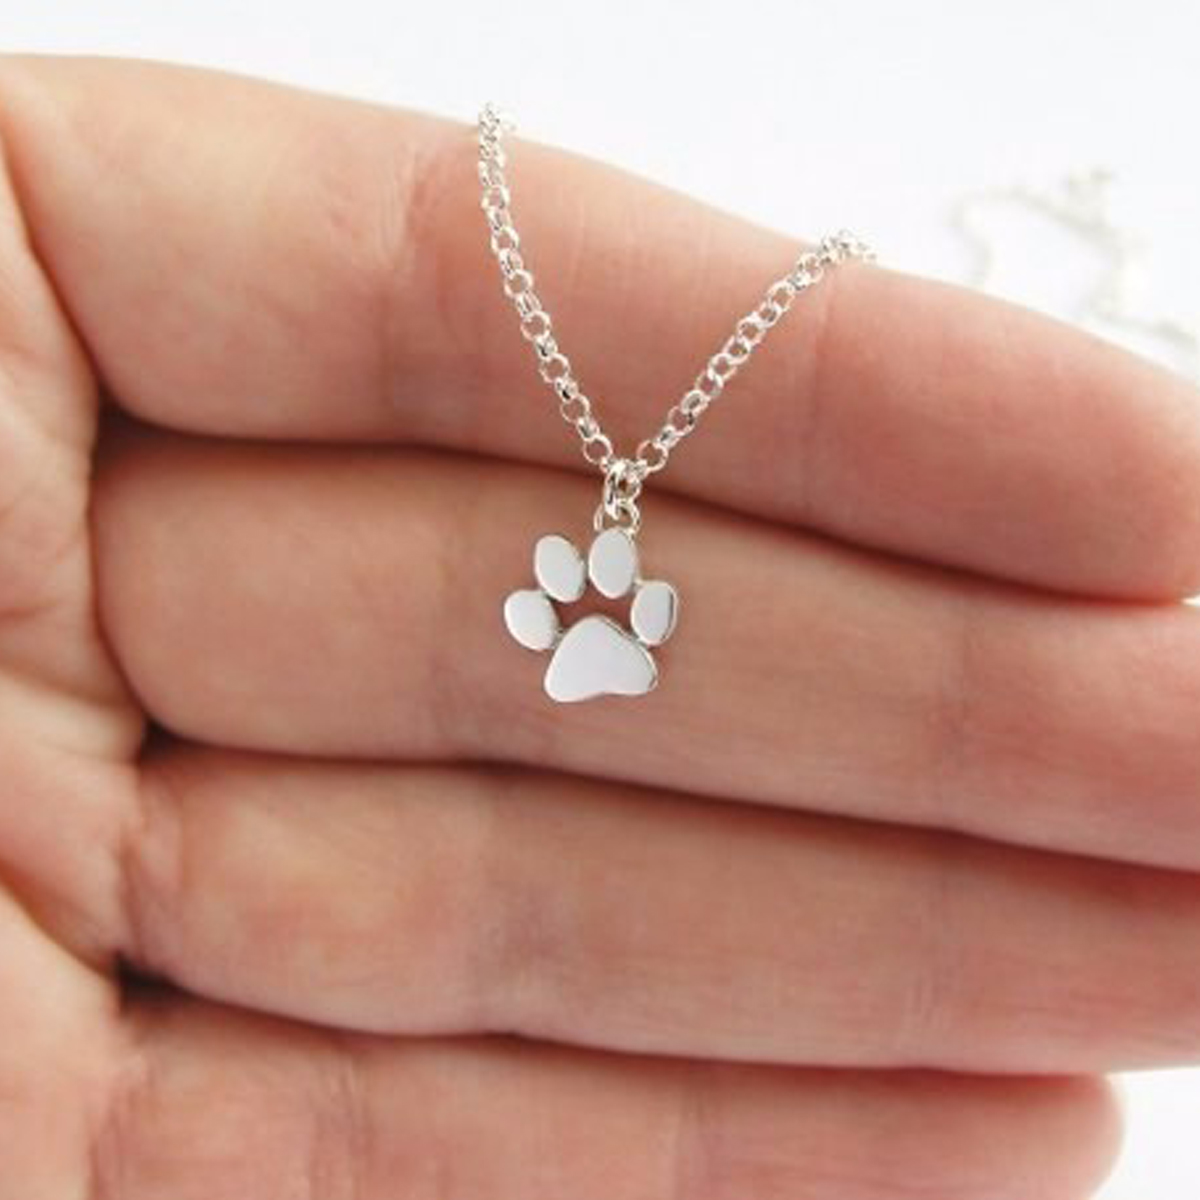 2017 Choker Necklace Tassut Cat and Dog Paw Print Animal Jewelry Women Pendant Long Cute Footprints Delicate Statement Necklaces